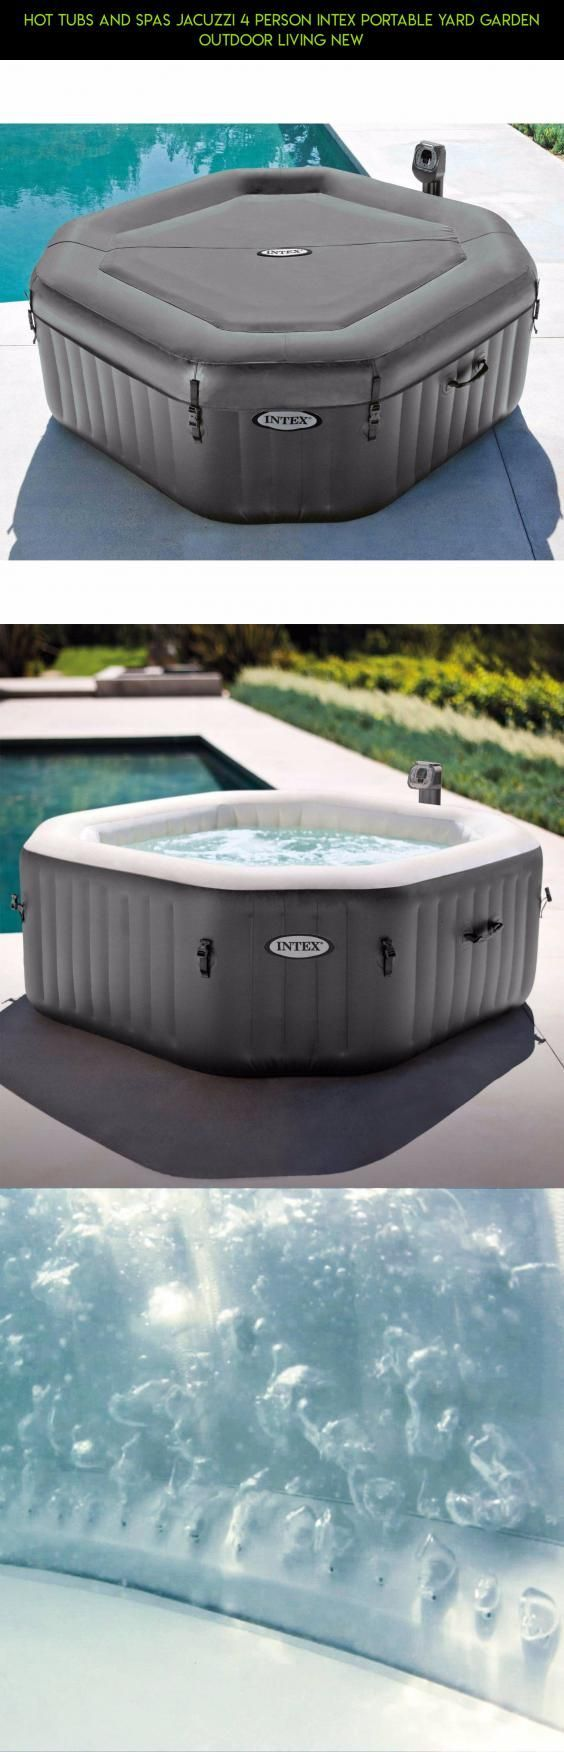 Hot Tubs and Spas Jacuzzi 4 Person Intex Portable Yard Garden ...